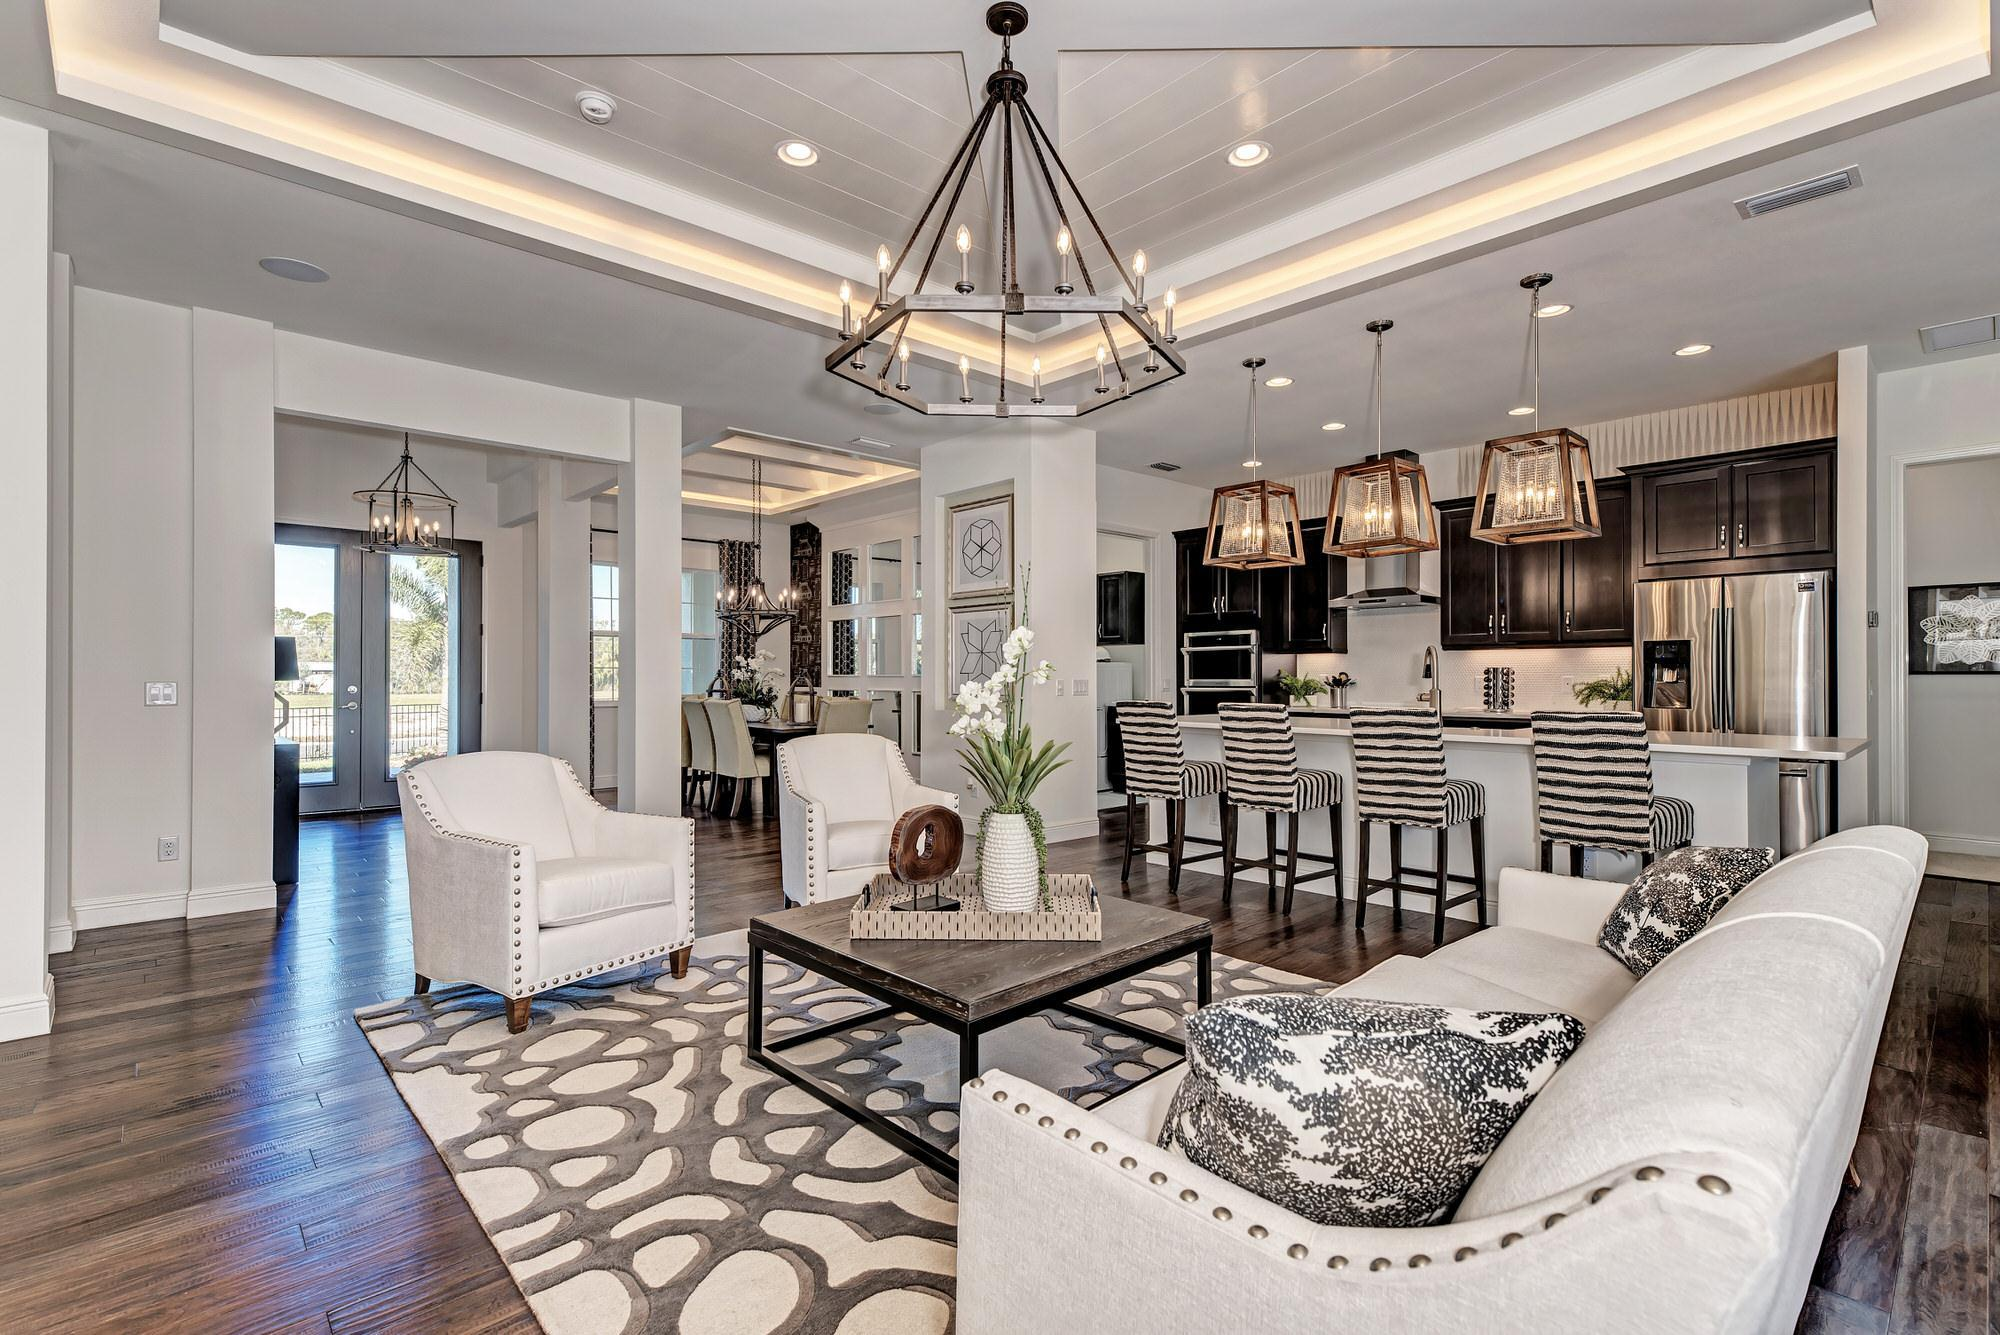 Living Area featured in the Aruba By Medallion Home in Orlando, FL